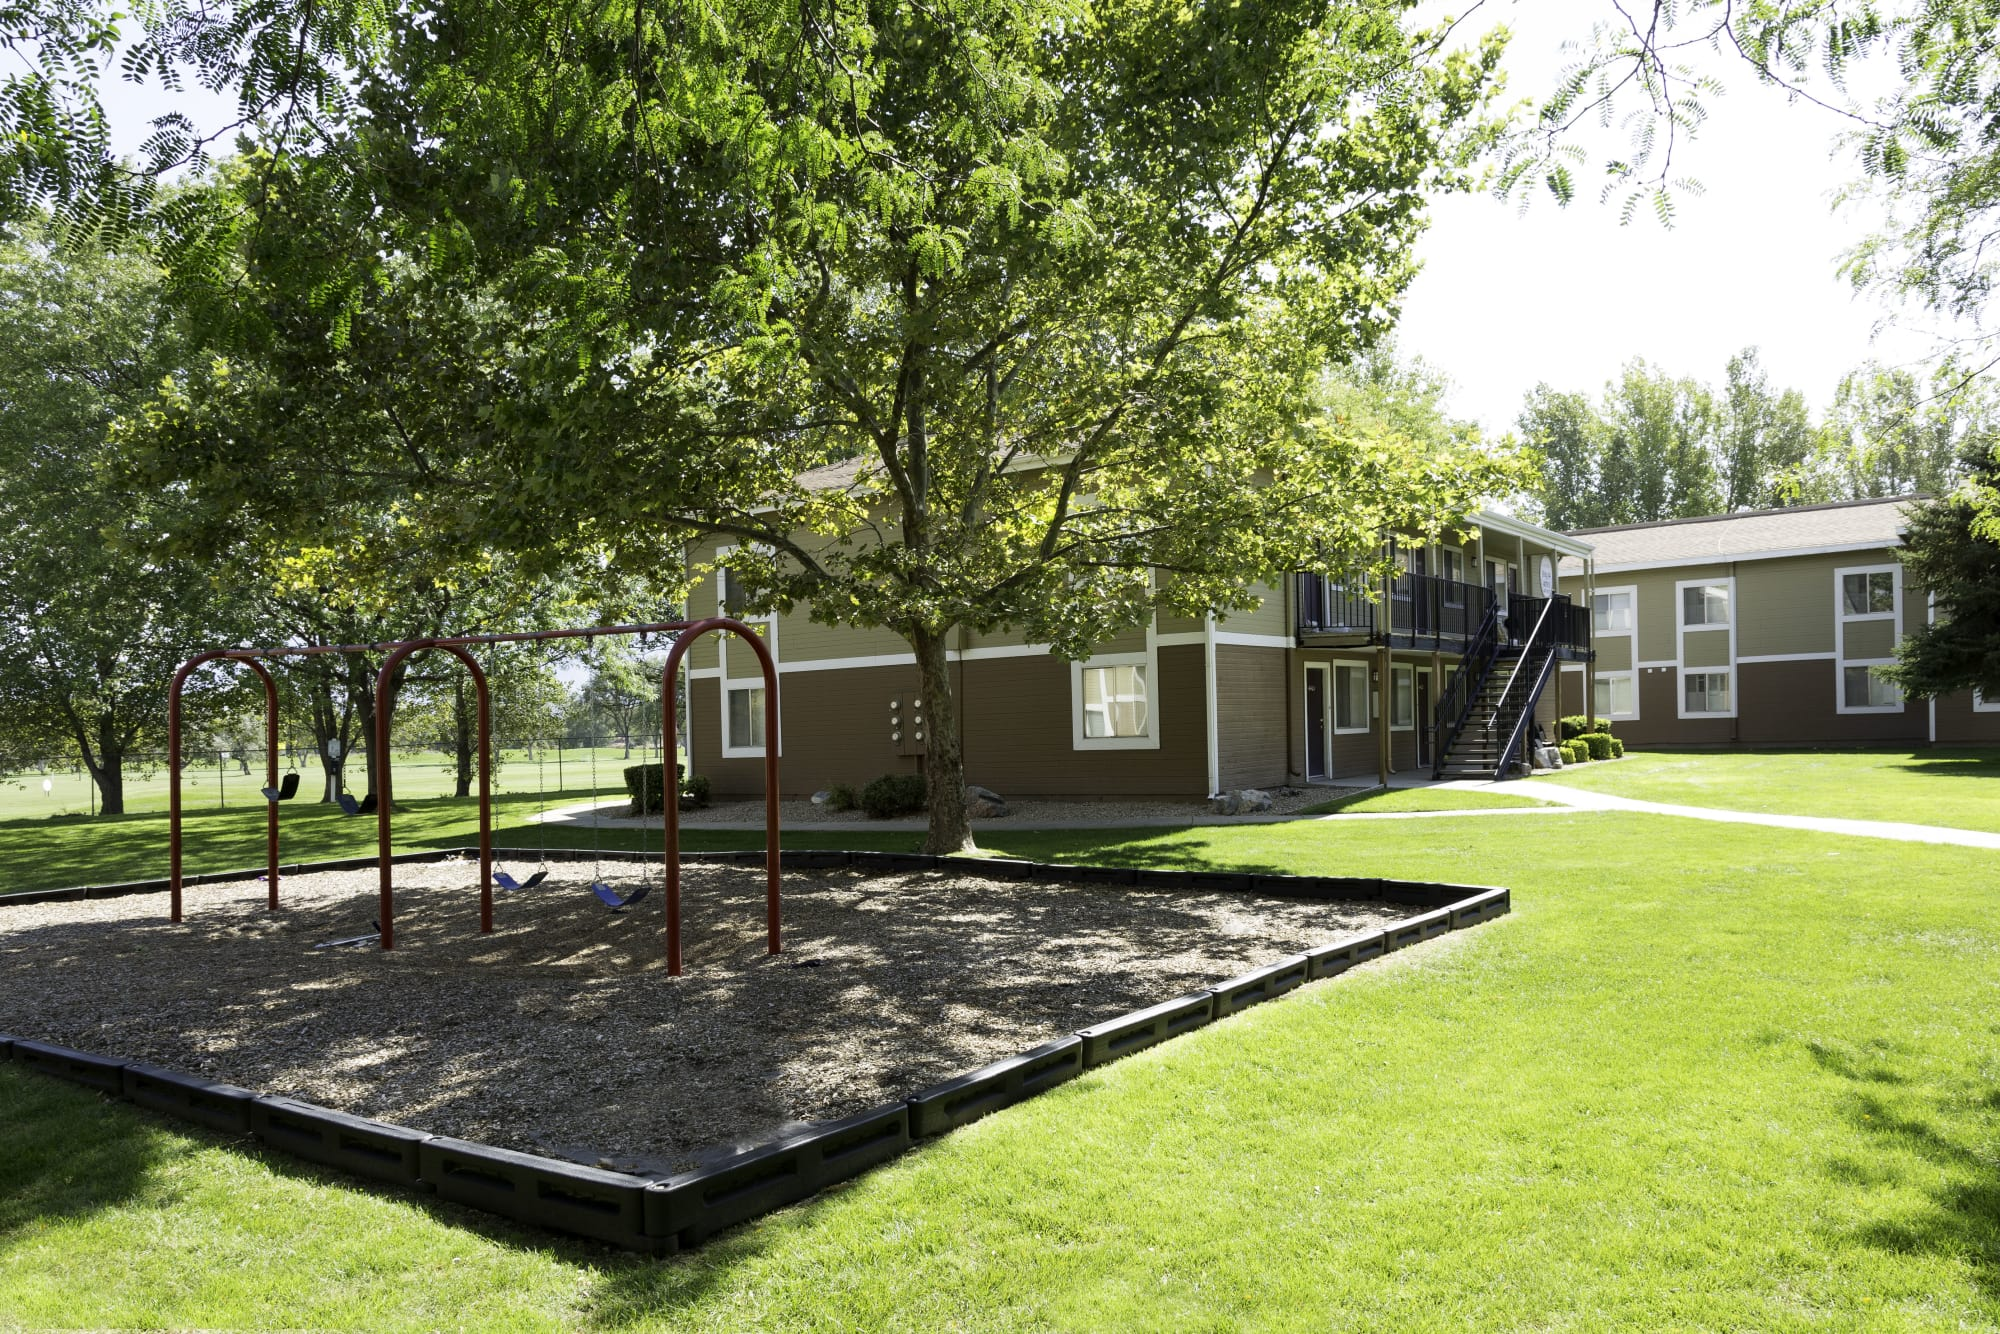 playground and exterior area